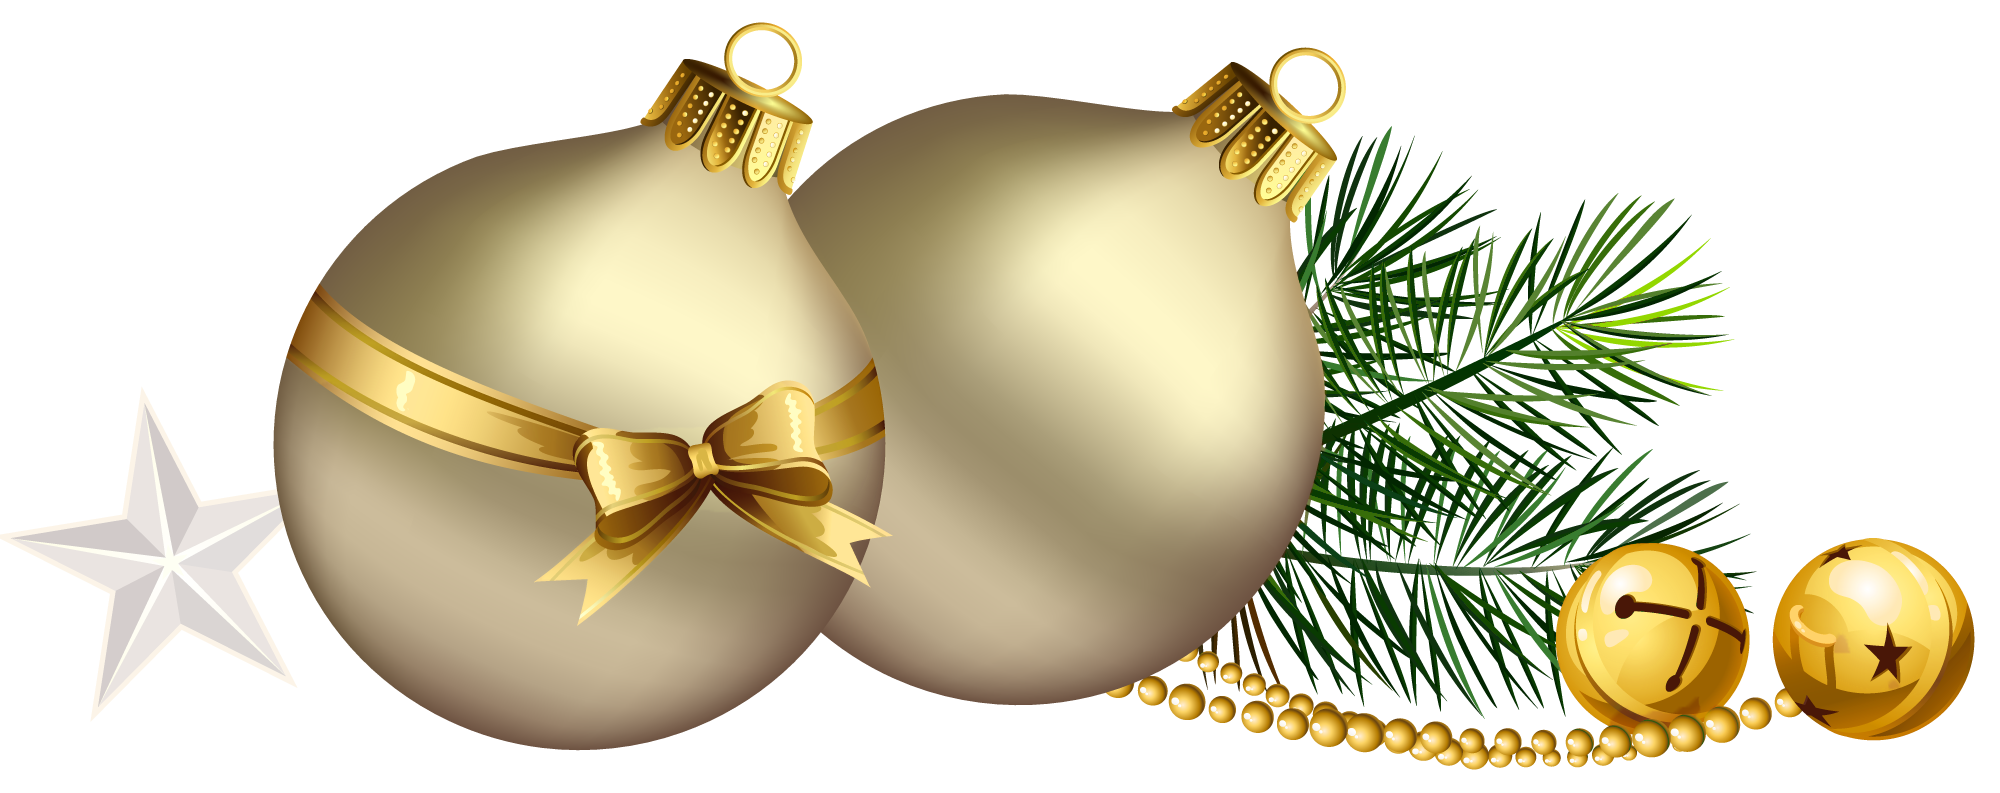 Christmas tree star clipart svg library download Christmas Balls with Pine Branch and Star Clipart | Gallery ... svg library download